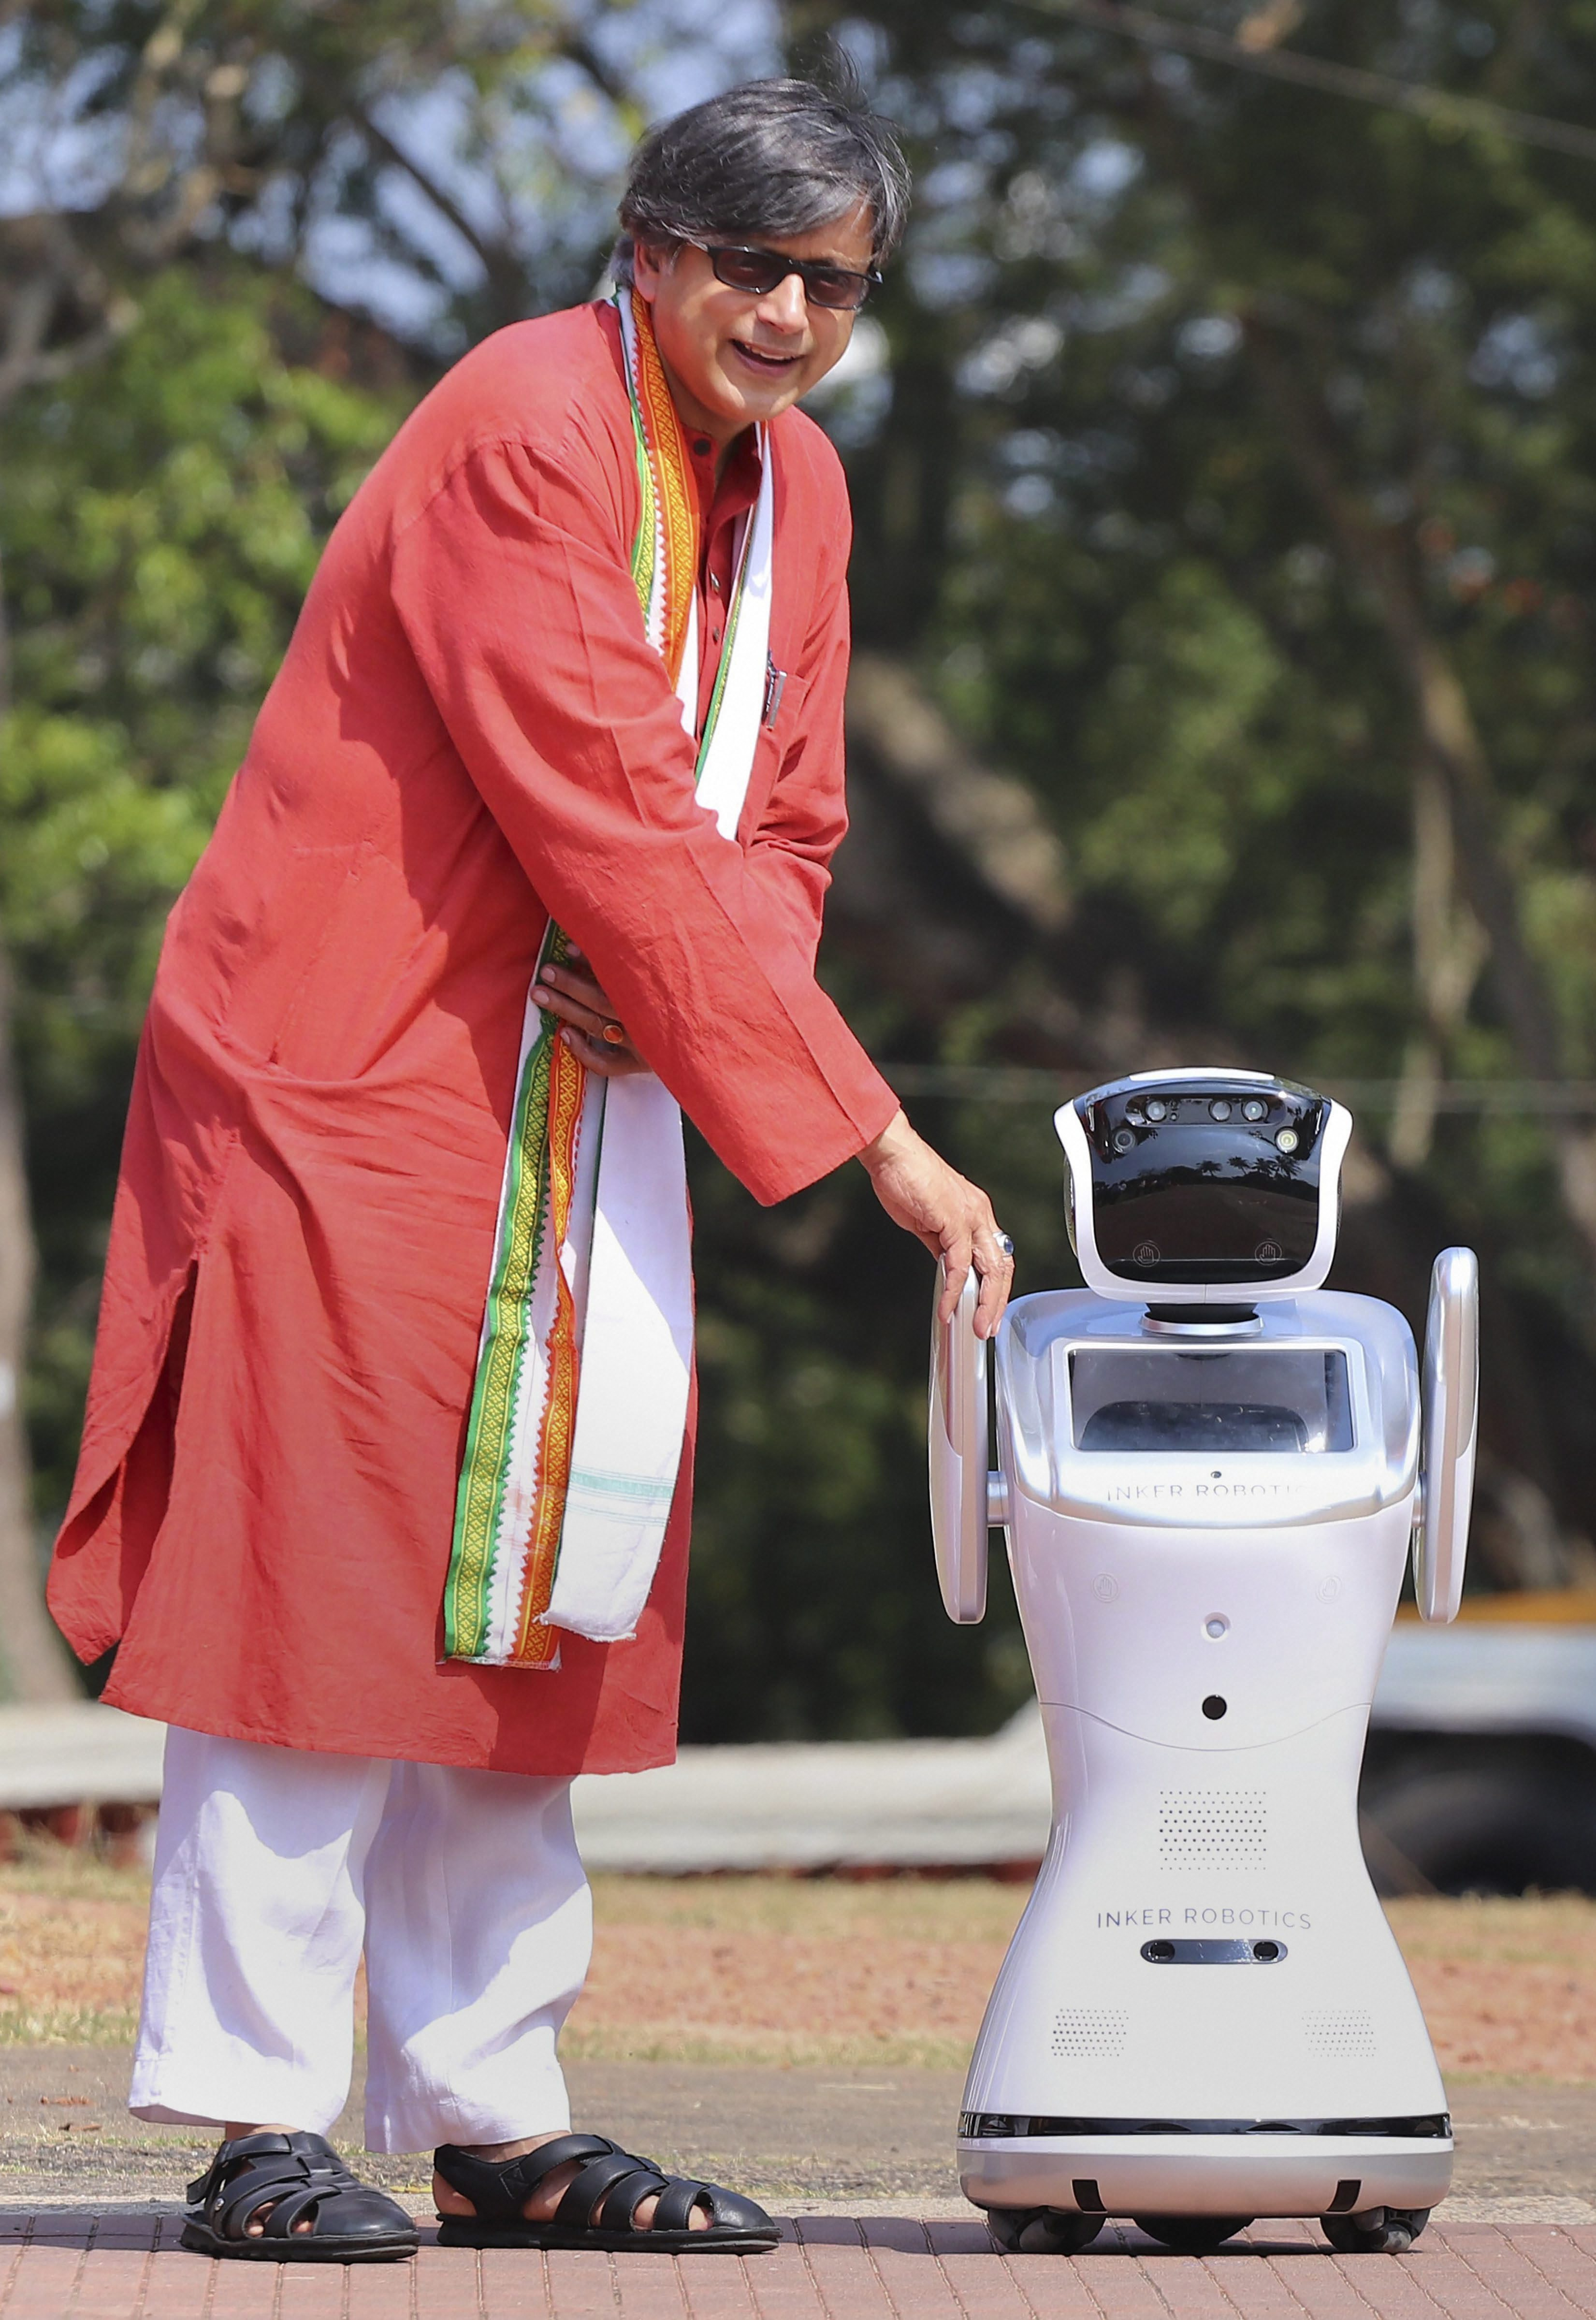 Senior Congress leader Shashi Tharoor with humanoid robot 'Inker Sanbot' at a function organised by International Foundation for Futuristic Education and Research and All-India Professional Congress, in Thiruvananthapuram - PTI